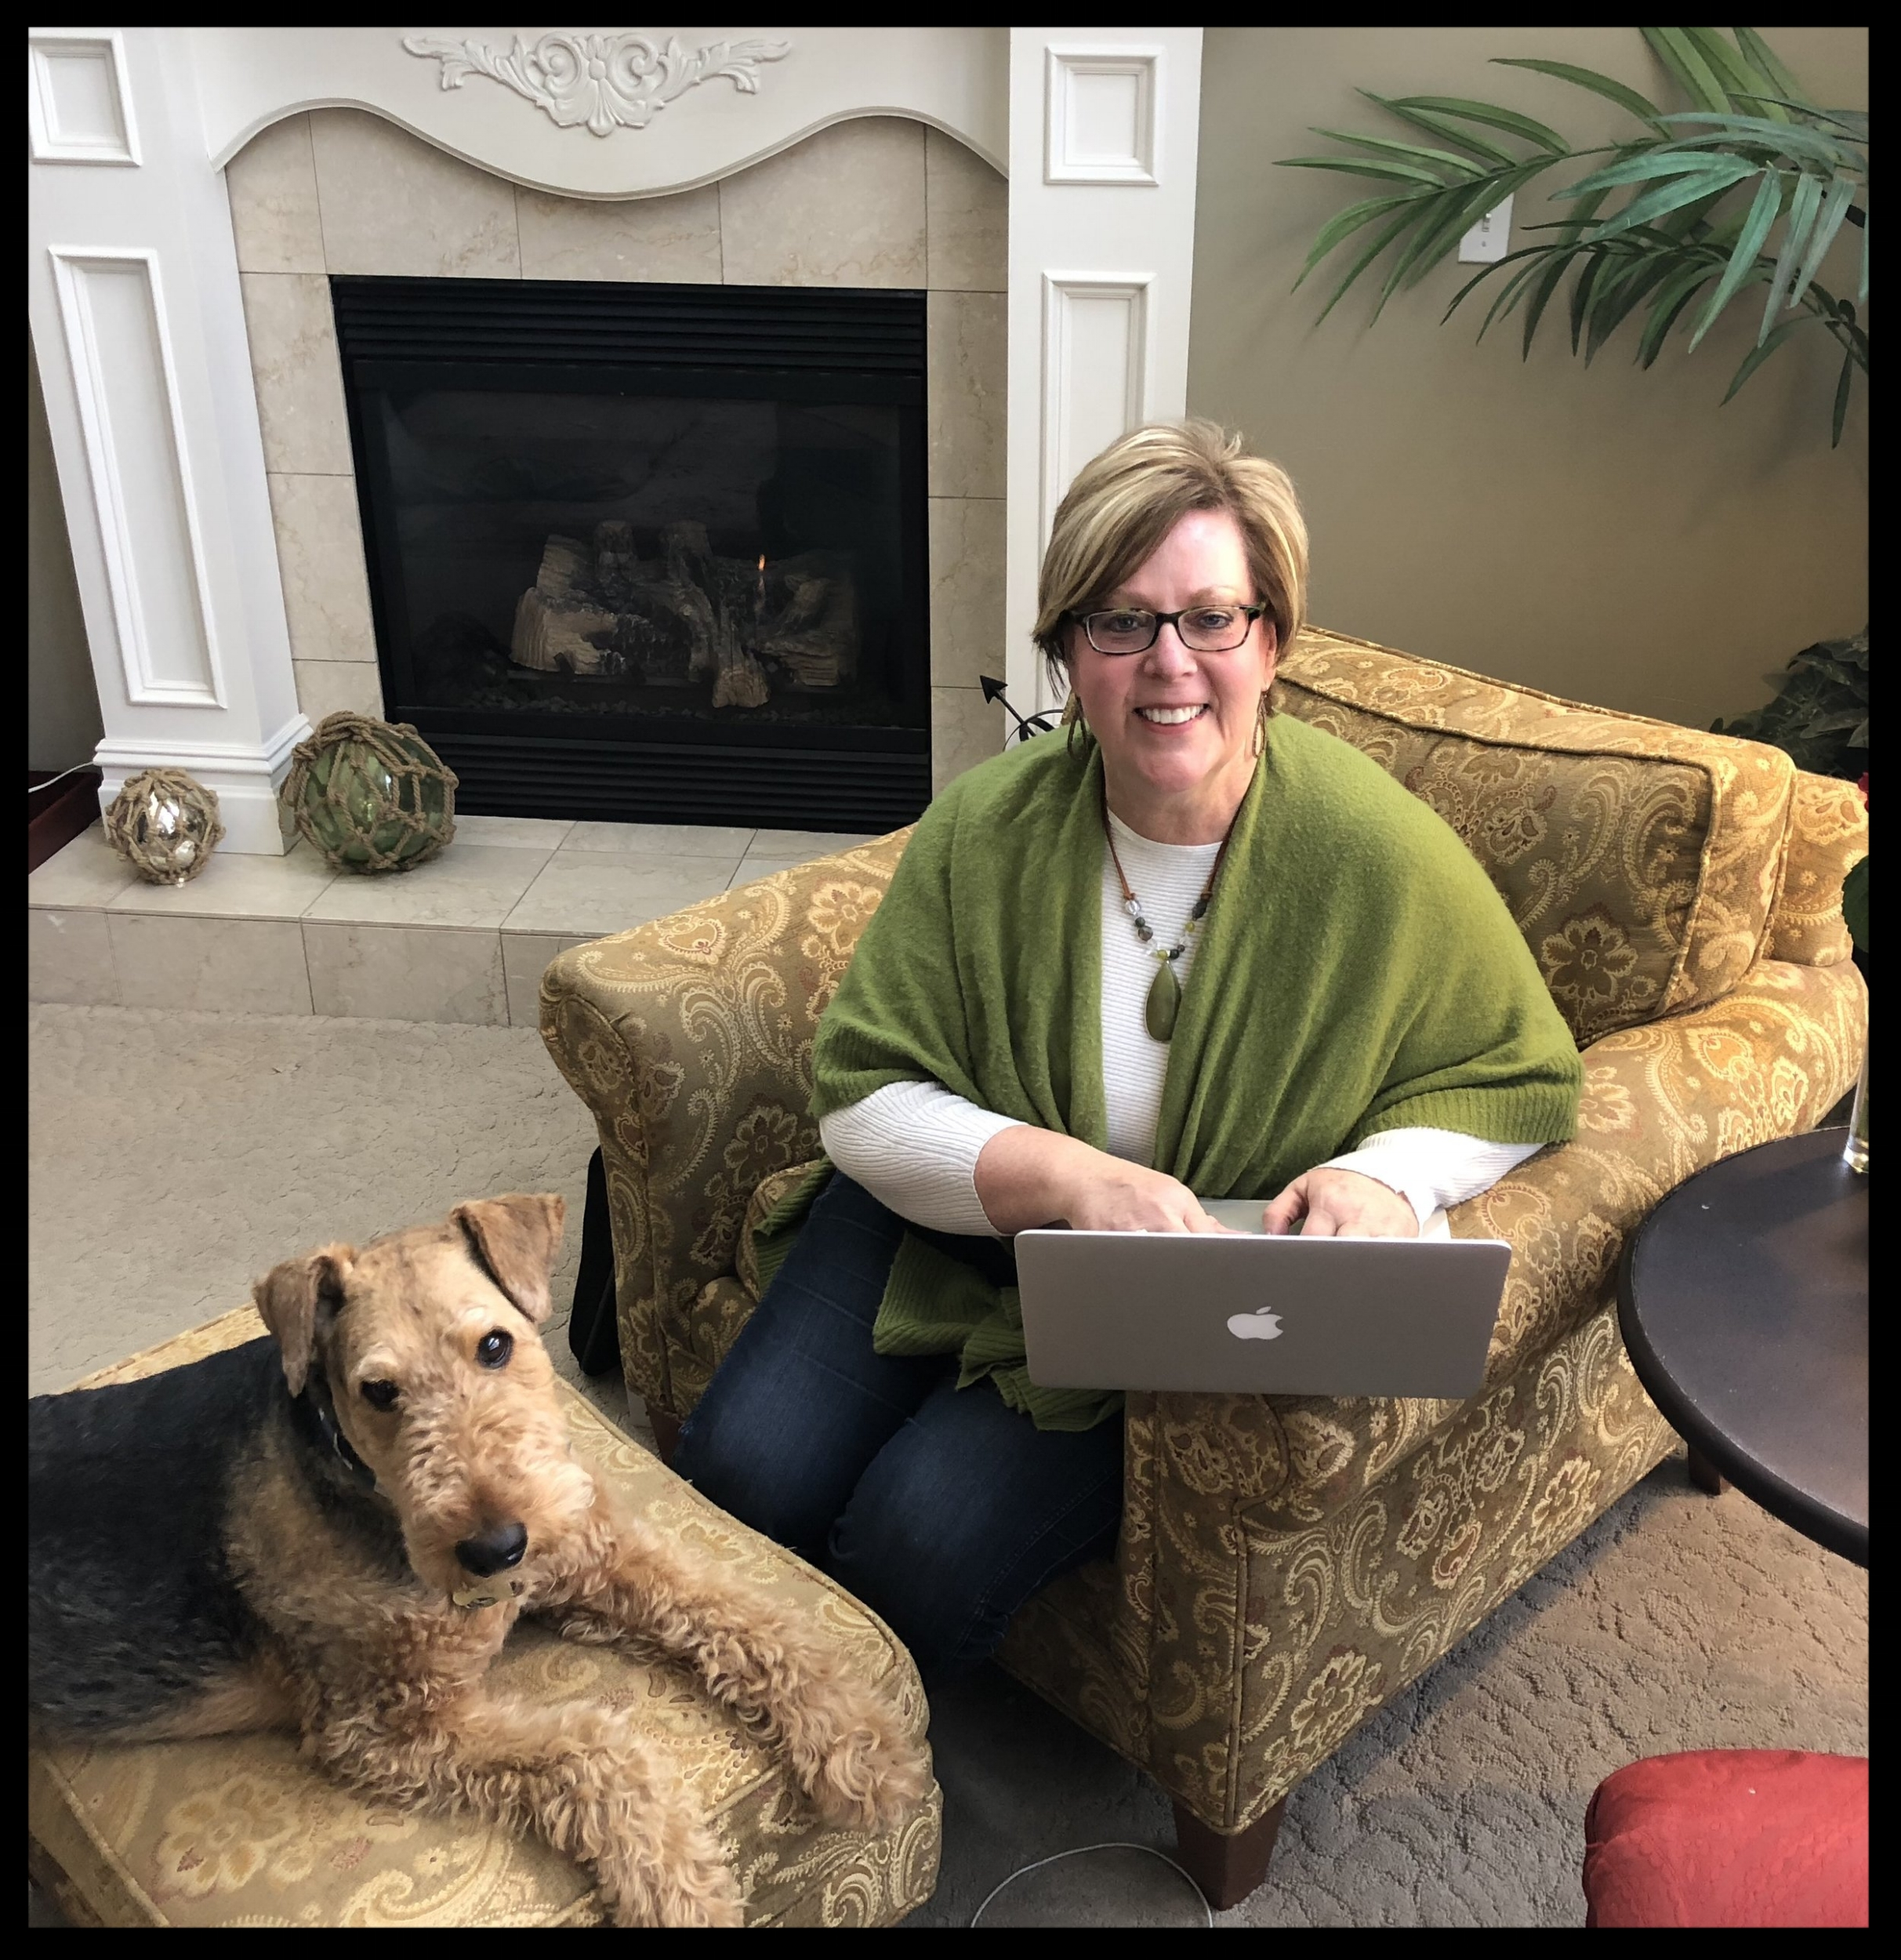 My dog, Griff, is helping me while I write my blog. Everyone should have such a wonderful helper! Please check out my posts and feel free to comment. I appreciate YOU!